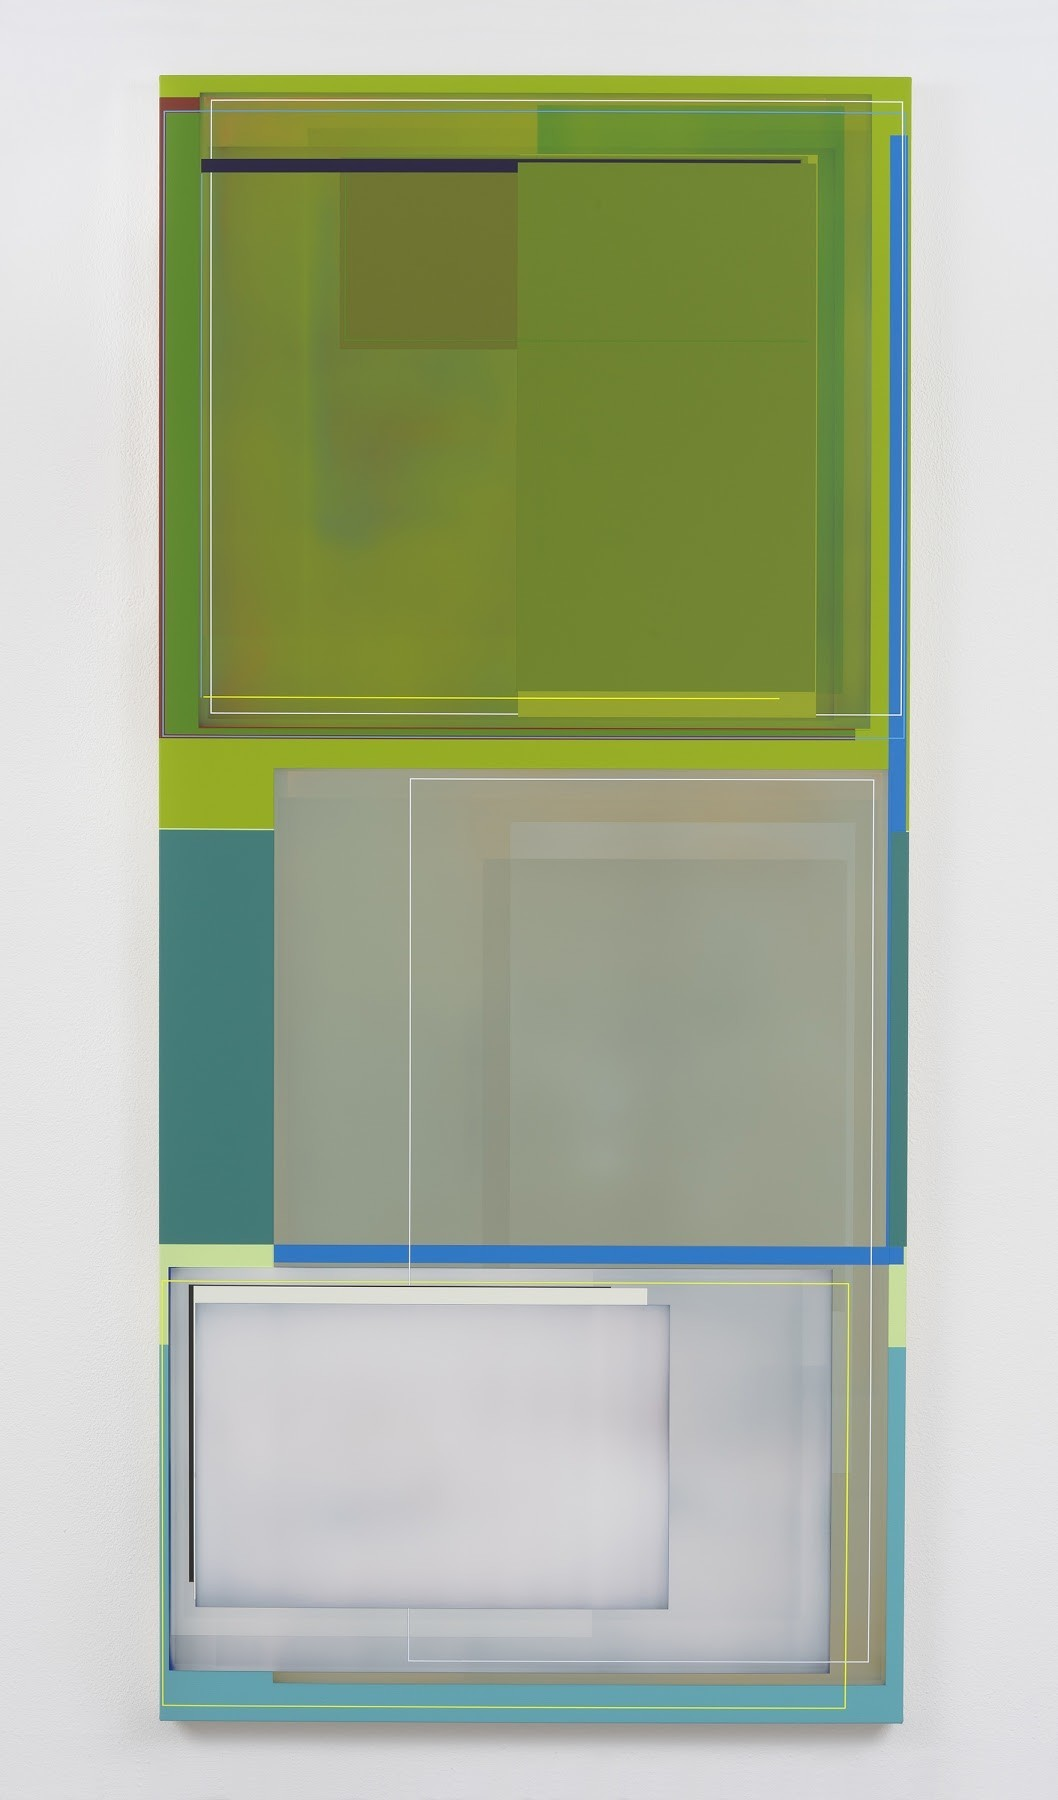 Patrick Wilson at Susanne Vielmetter Los Angeles Projects